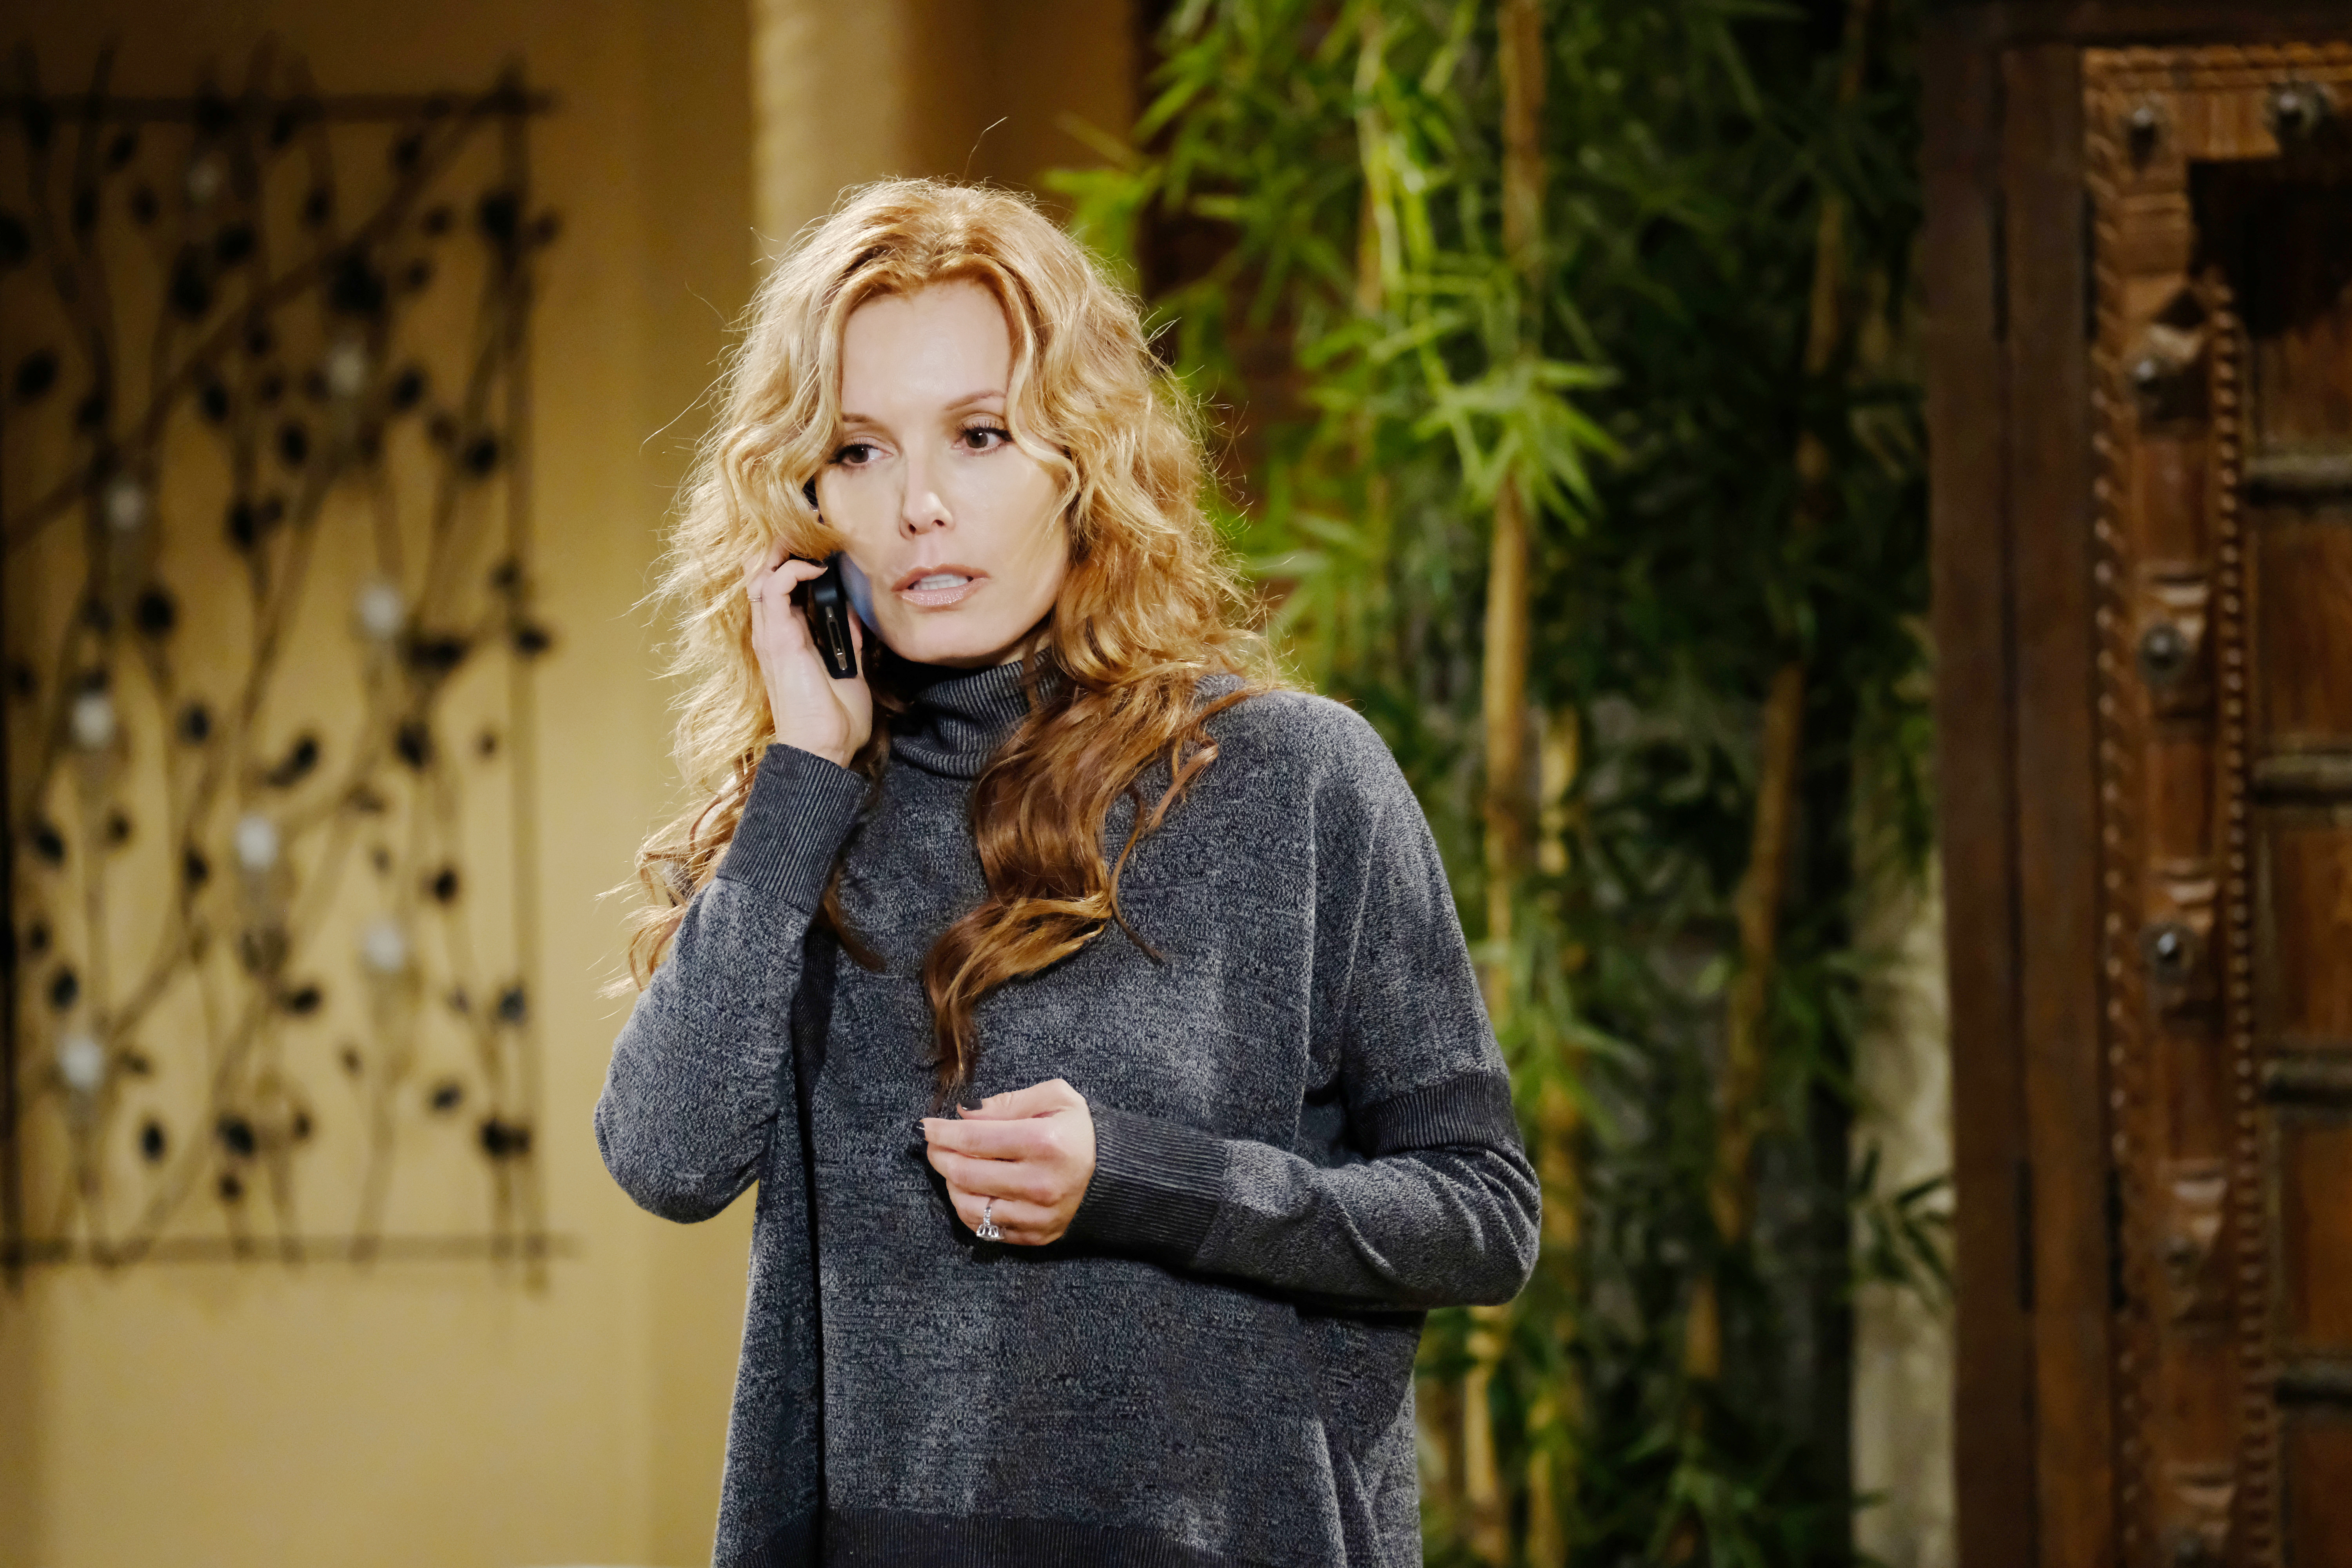 The Young and the Restless Recap: Feb 20 -Feb 24 *Spoiler Alert*